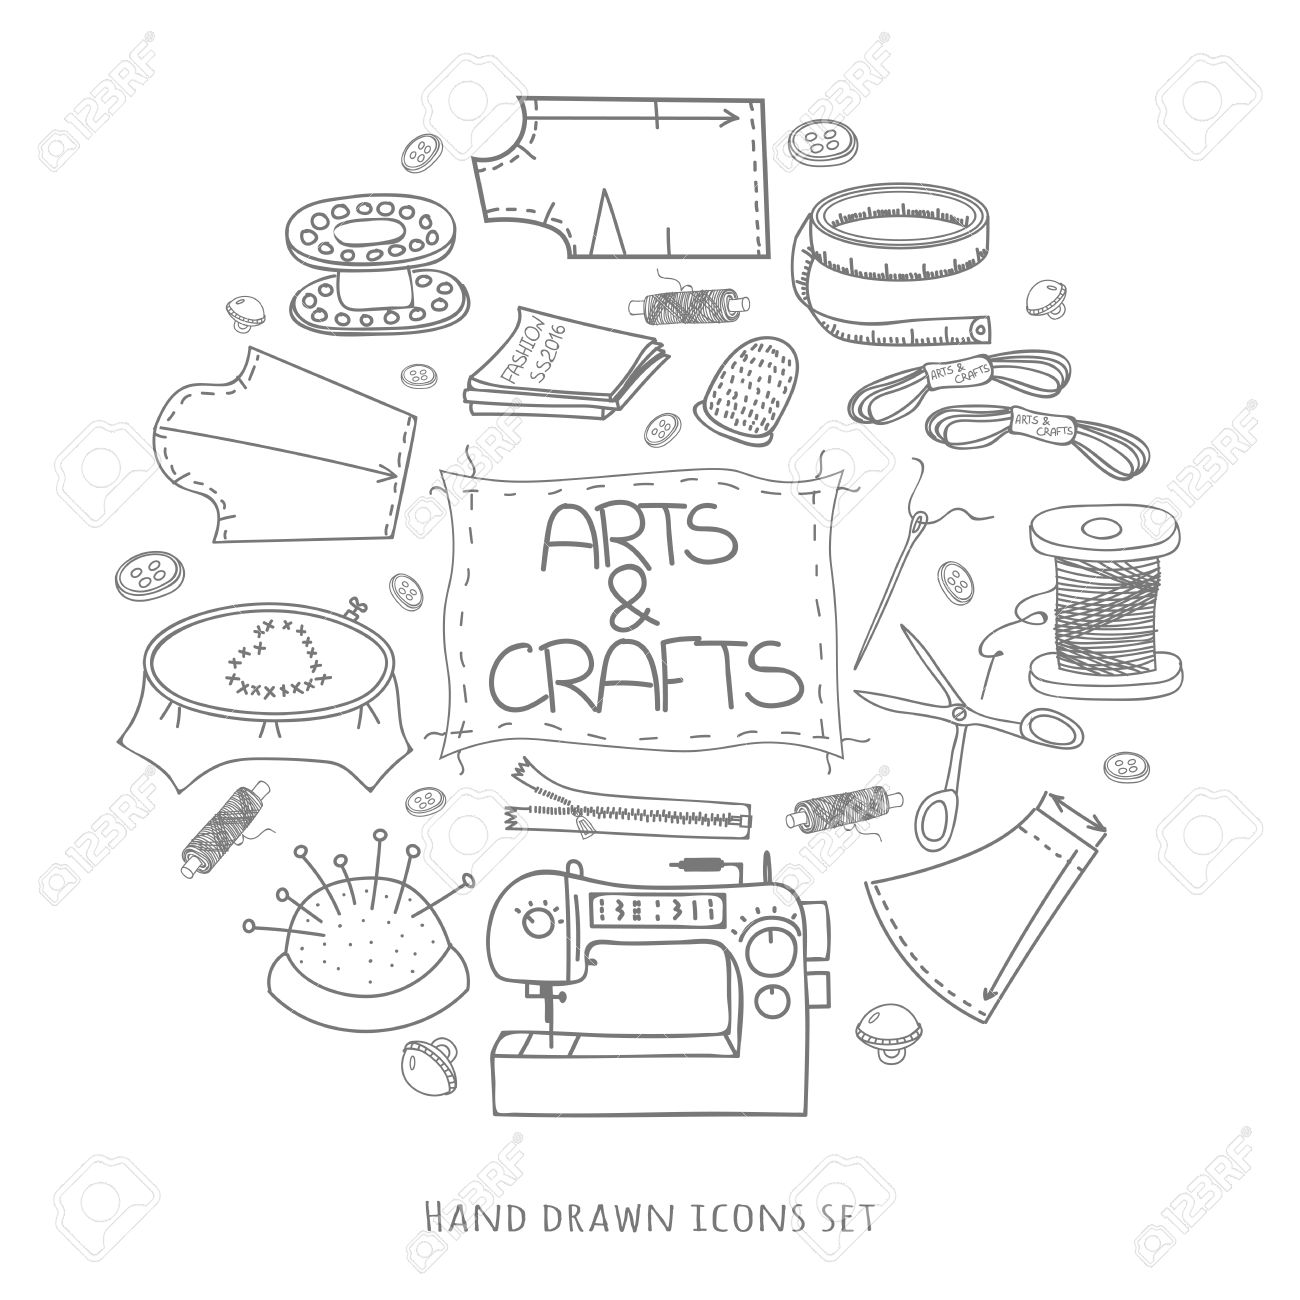 Hand Drawn Vector Sewing Set Doodle Collection Illustration Made Craft Supplies And